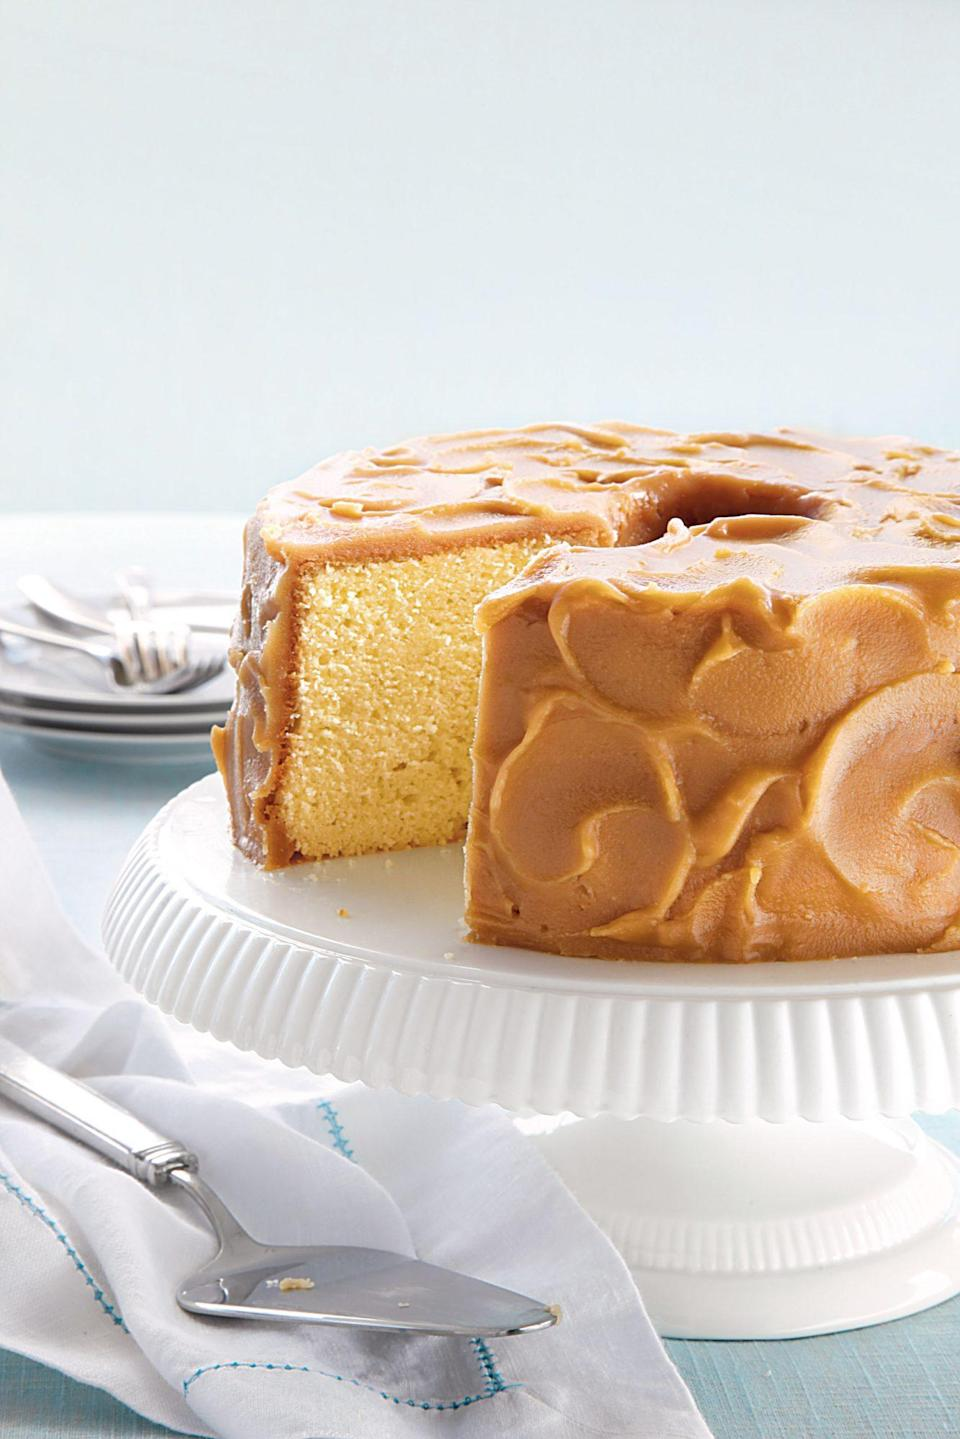 """<p><strong>Recipe: <a href=""""https://www.southernliving.com/recipes/caramel-frosted-pound-cake"""" rel=""""nofollow noopener"""" target=""""_blank"""" data-ylk=""""slk:Caramel-Frosted Pound Cake"""" class=""""link rapid-noclick-resp"""">Caramel-Frosted Pound Cake</a></strong></p> <p>Pound cake meets caramel cake in this absolute dream of a dessert. One reviewer even said it was """"the best cake I've ever baked!""""</p>"""